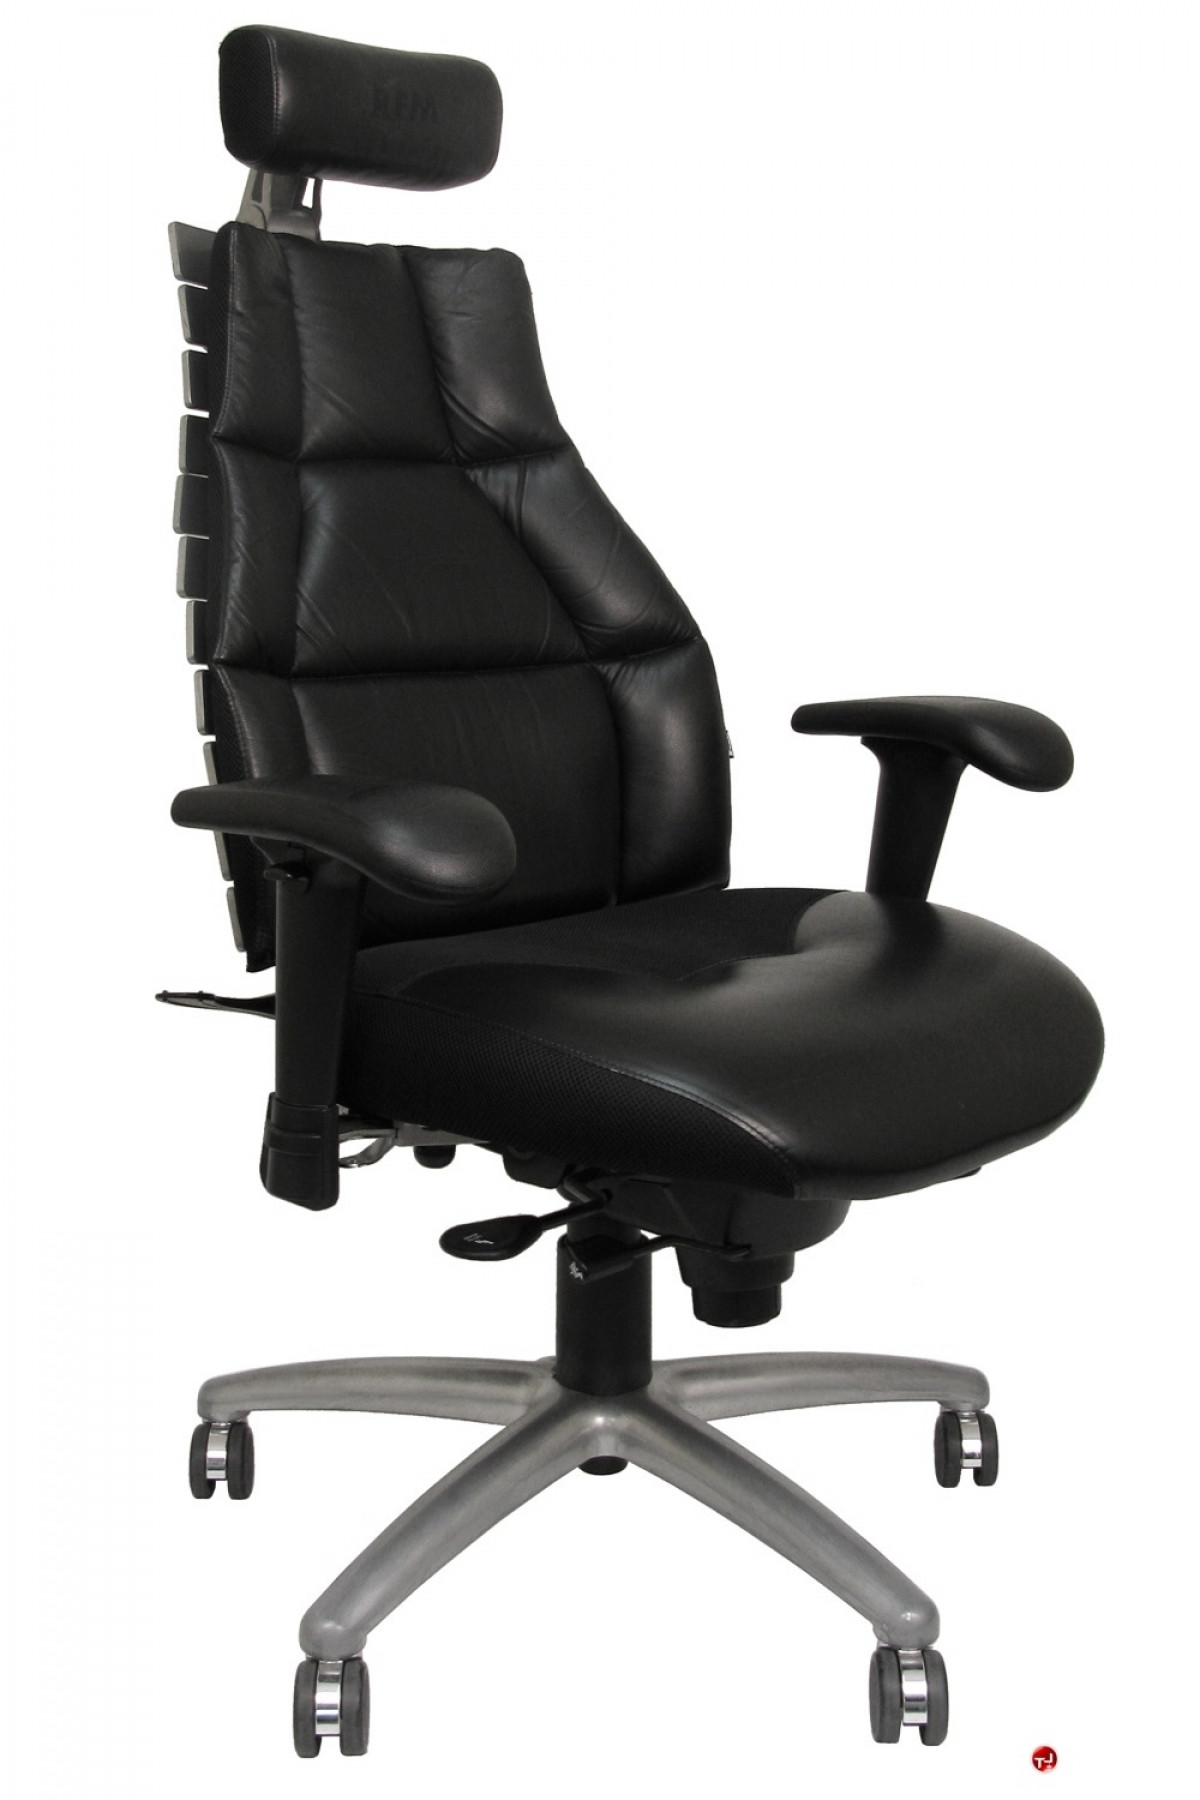 Best ideas about High Office Chair . Save or Pin Ergonomic High Back fice Chair Now.